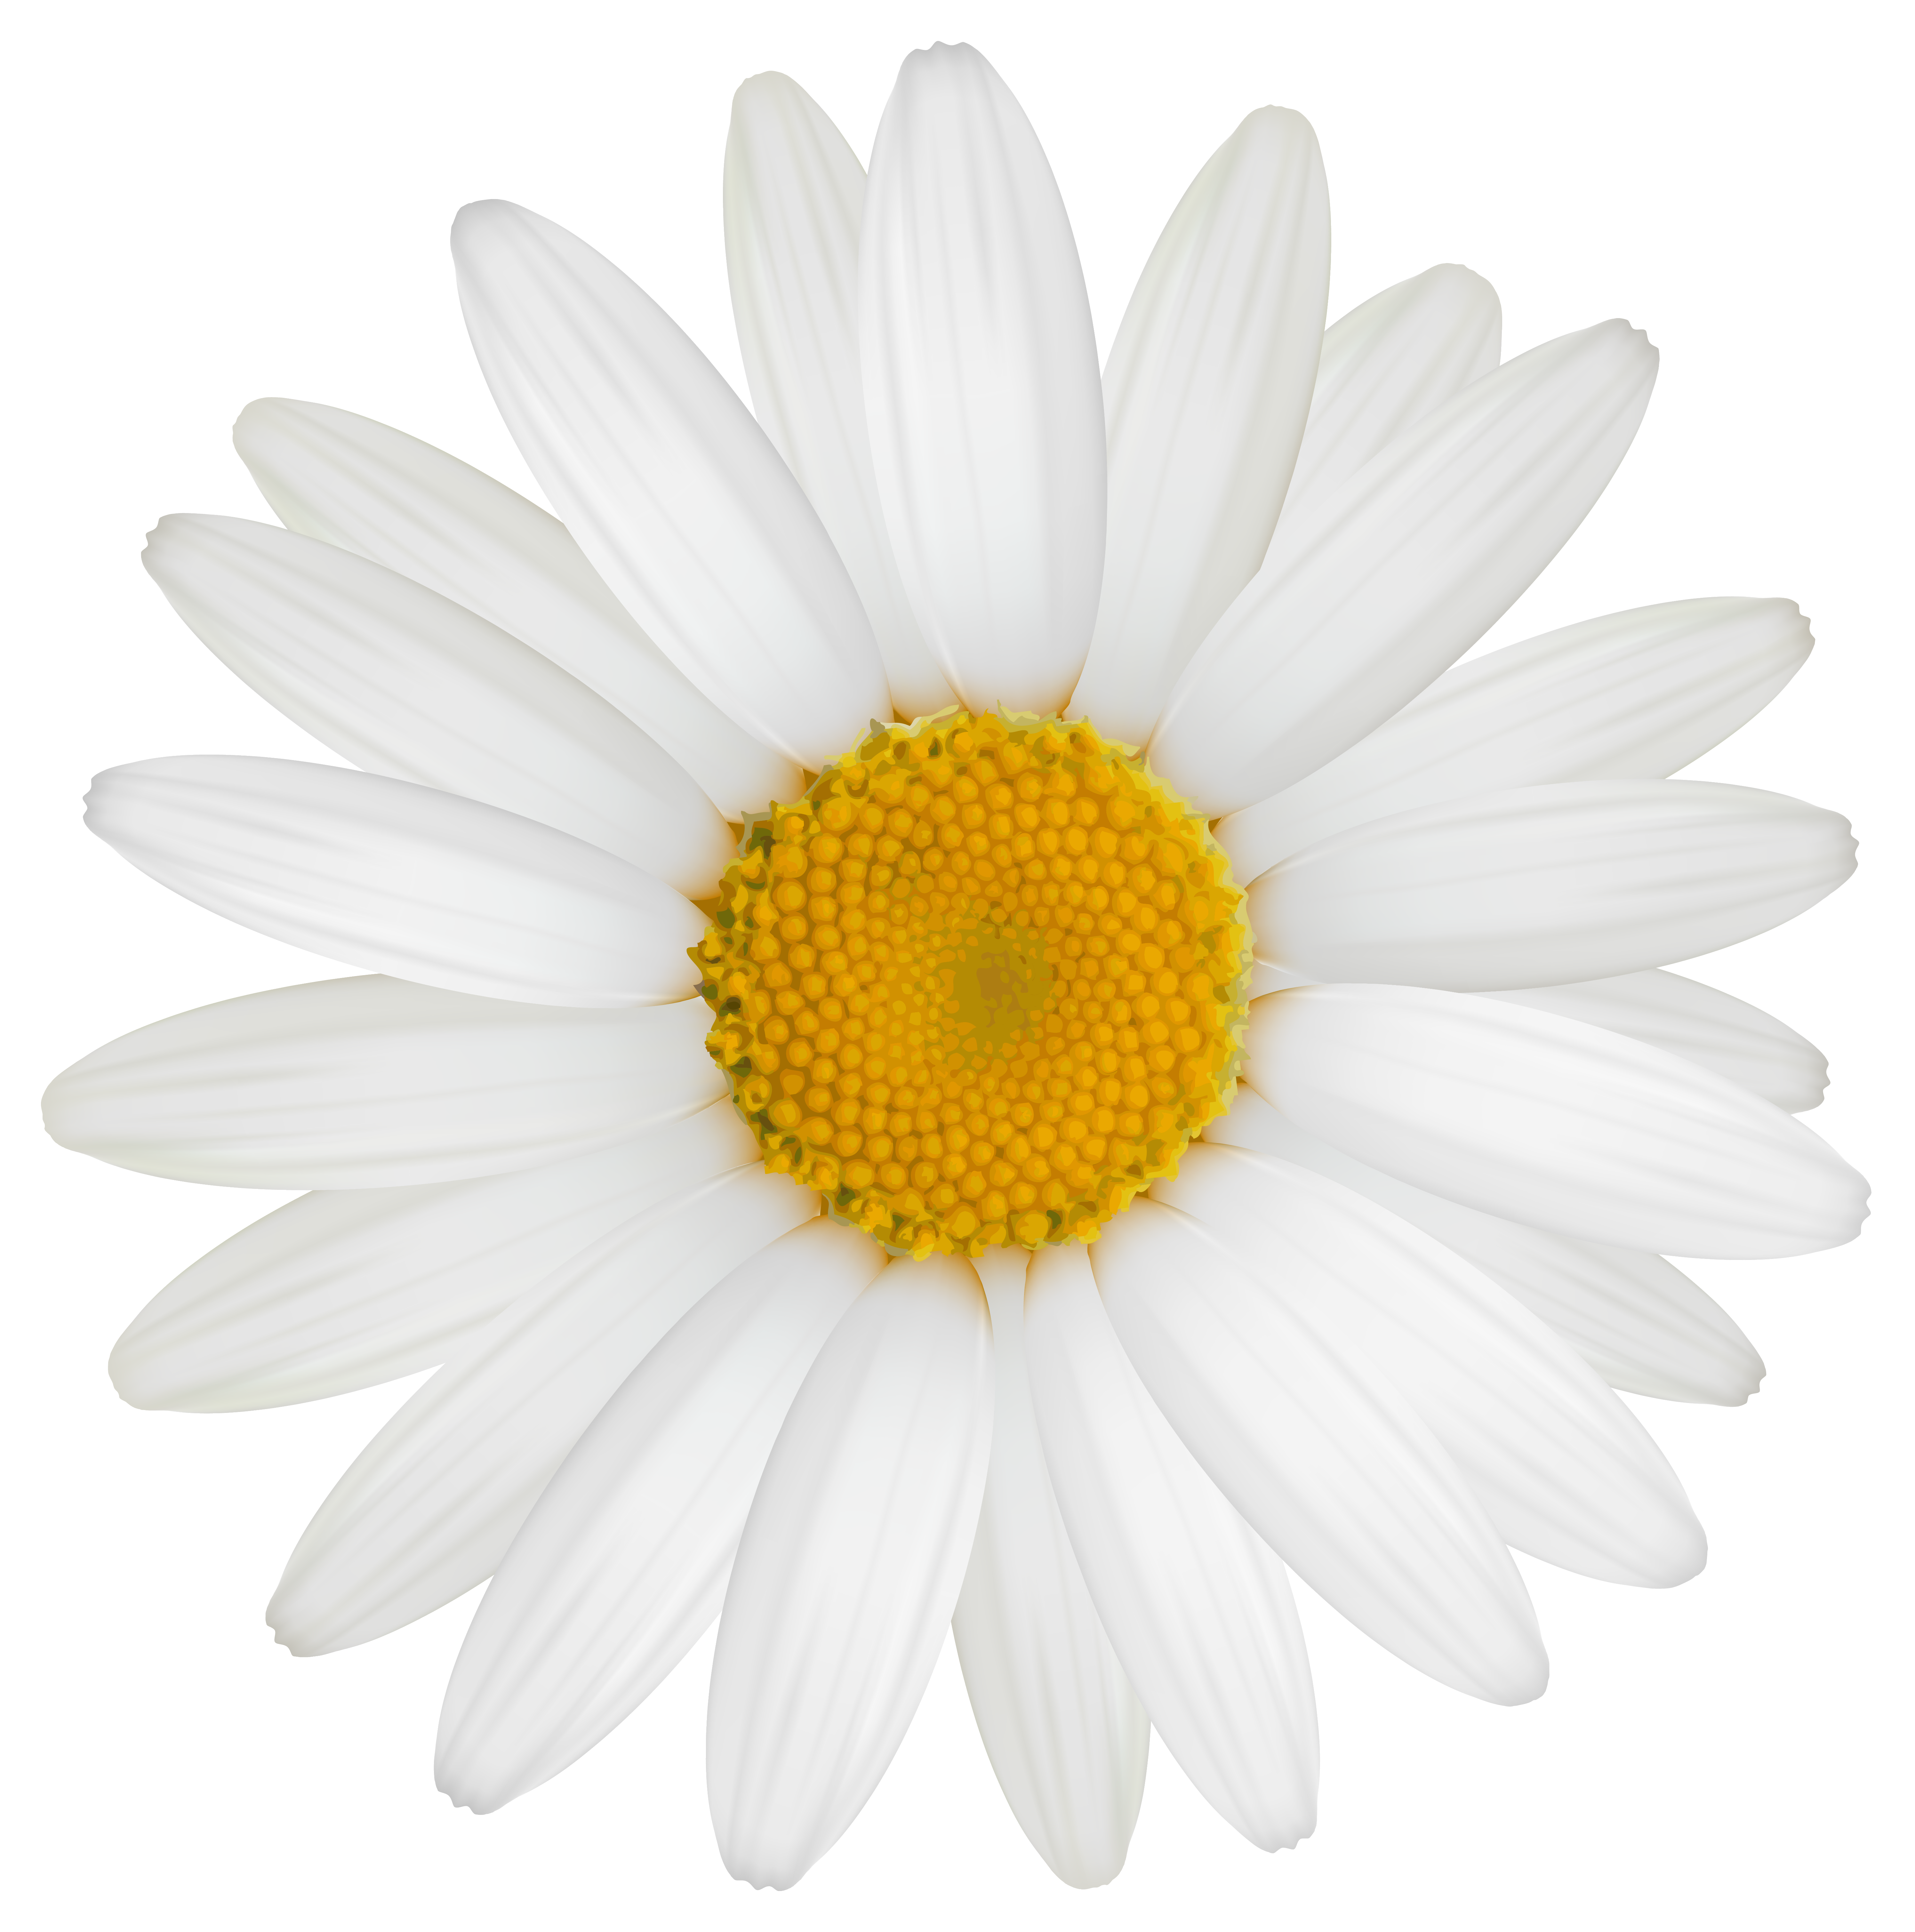 Png image gallery yopriceville. Daisy clipart transparent background svg royalty free